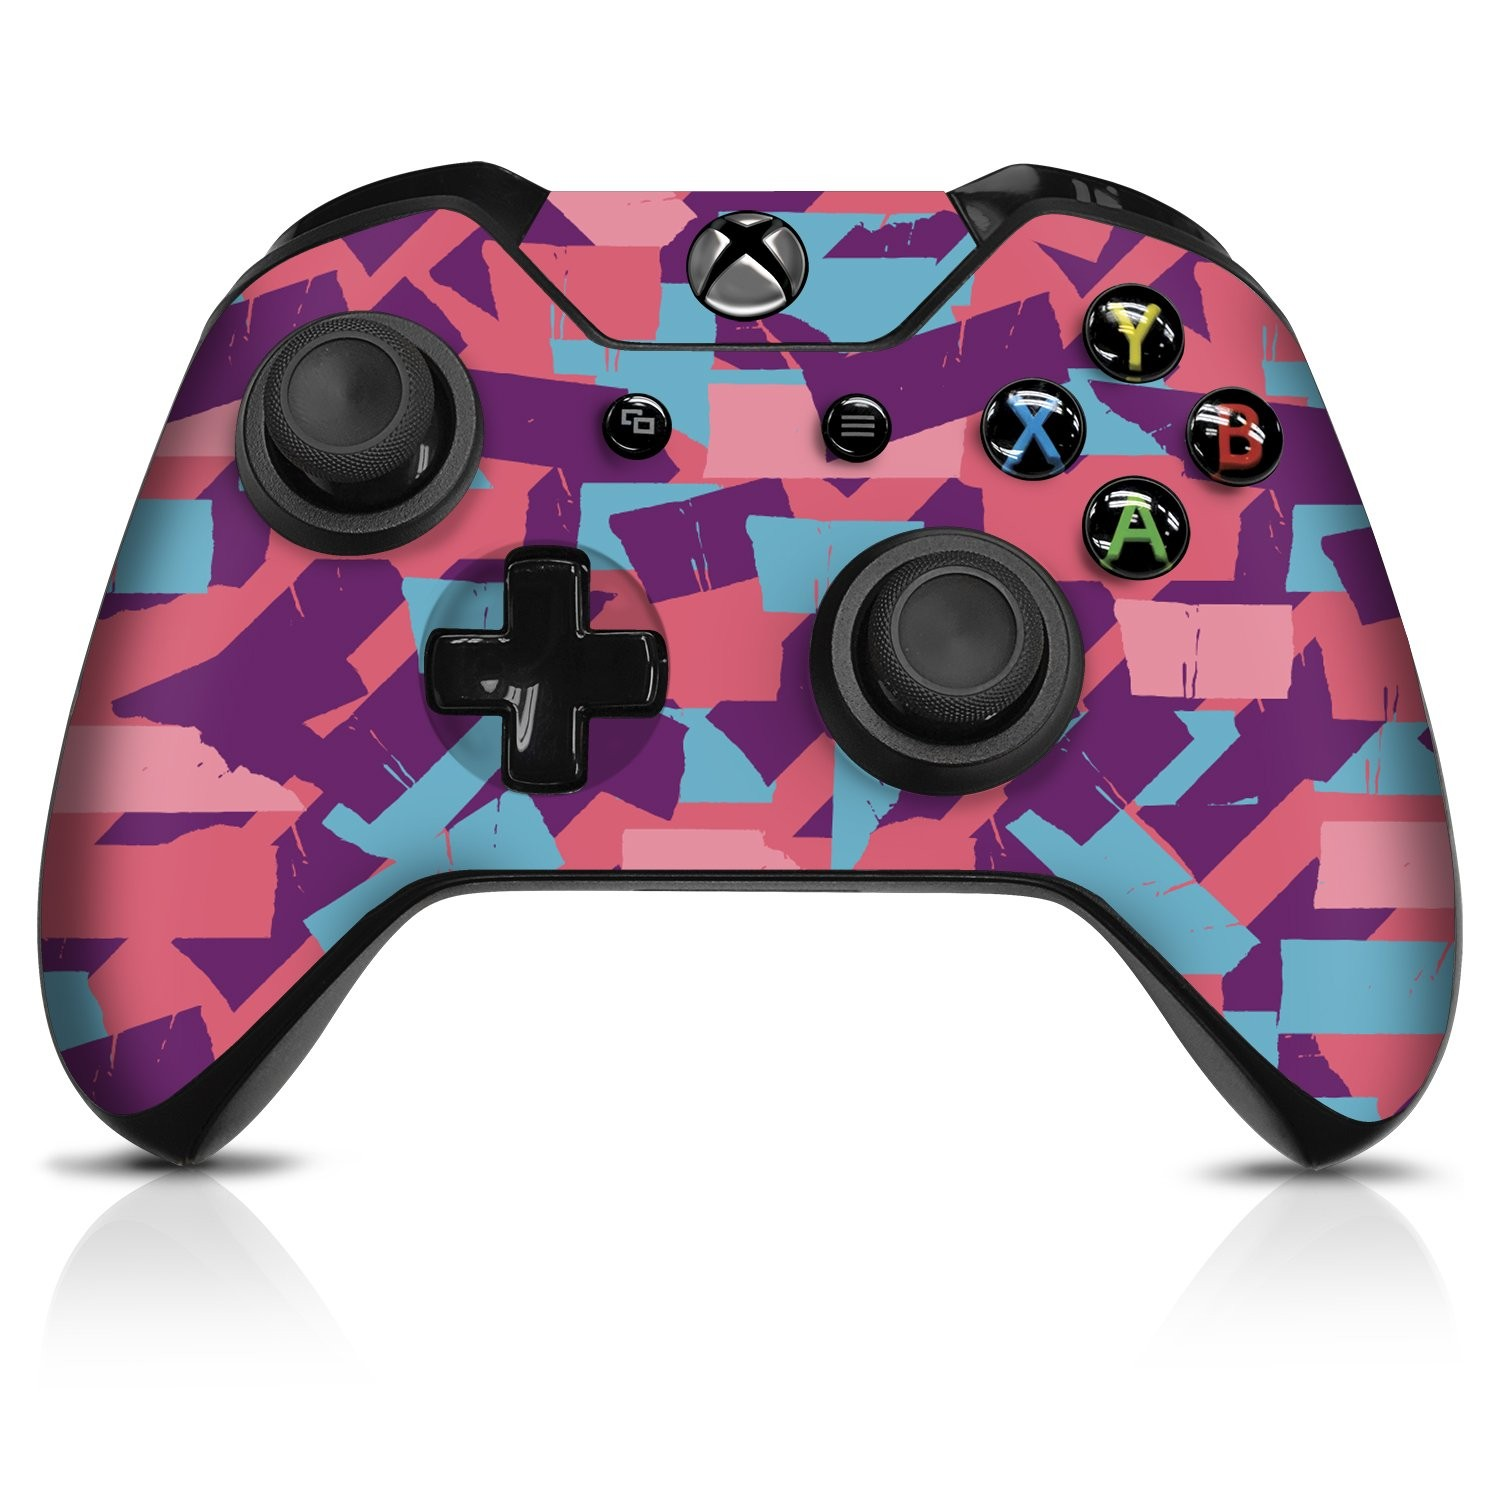 Bubble Gum Tape  Xbox One Controller Skin - Officially Licensed by Xbox - Controller Gear